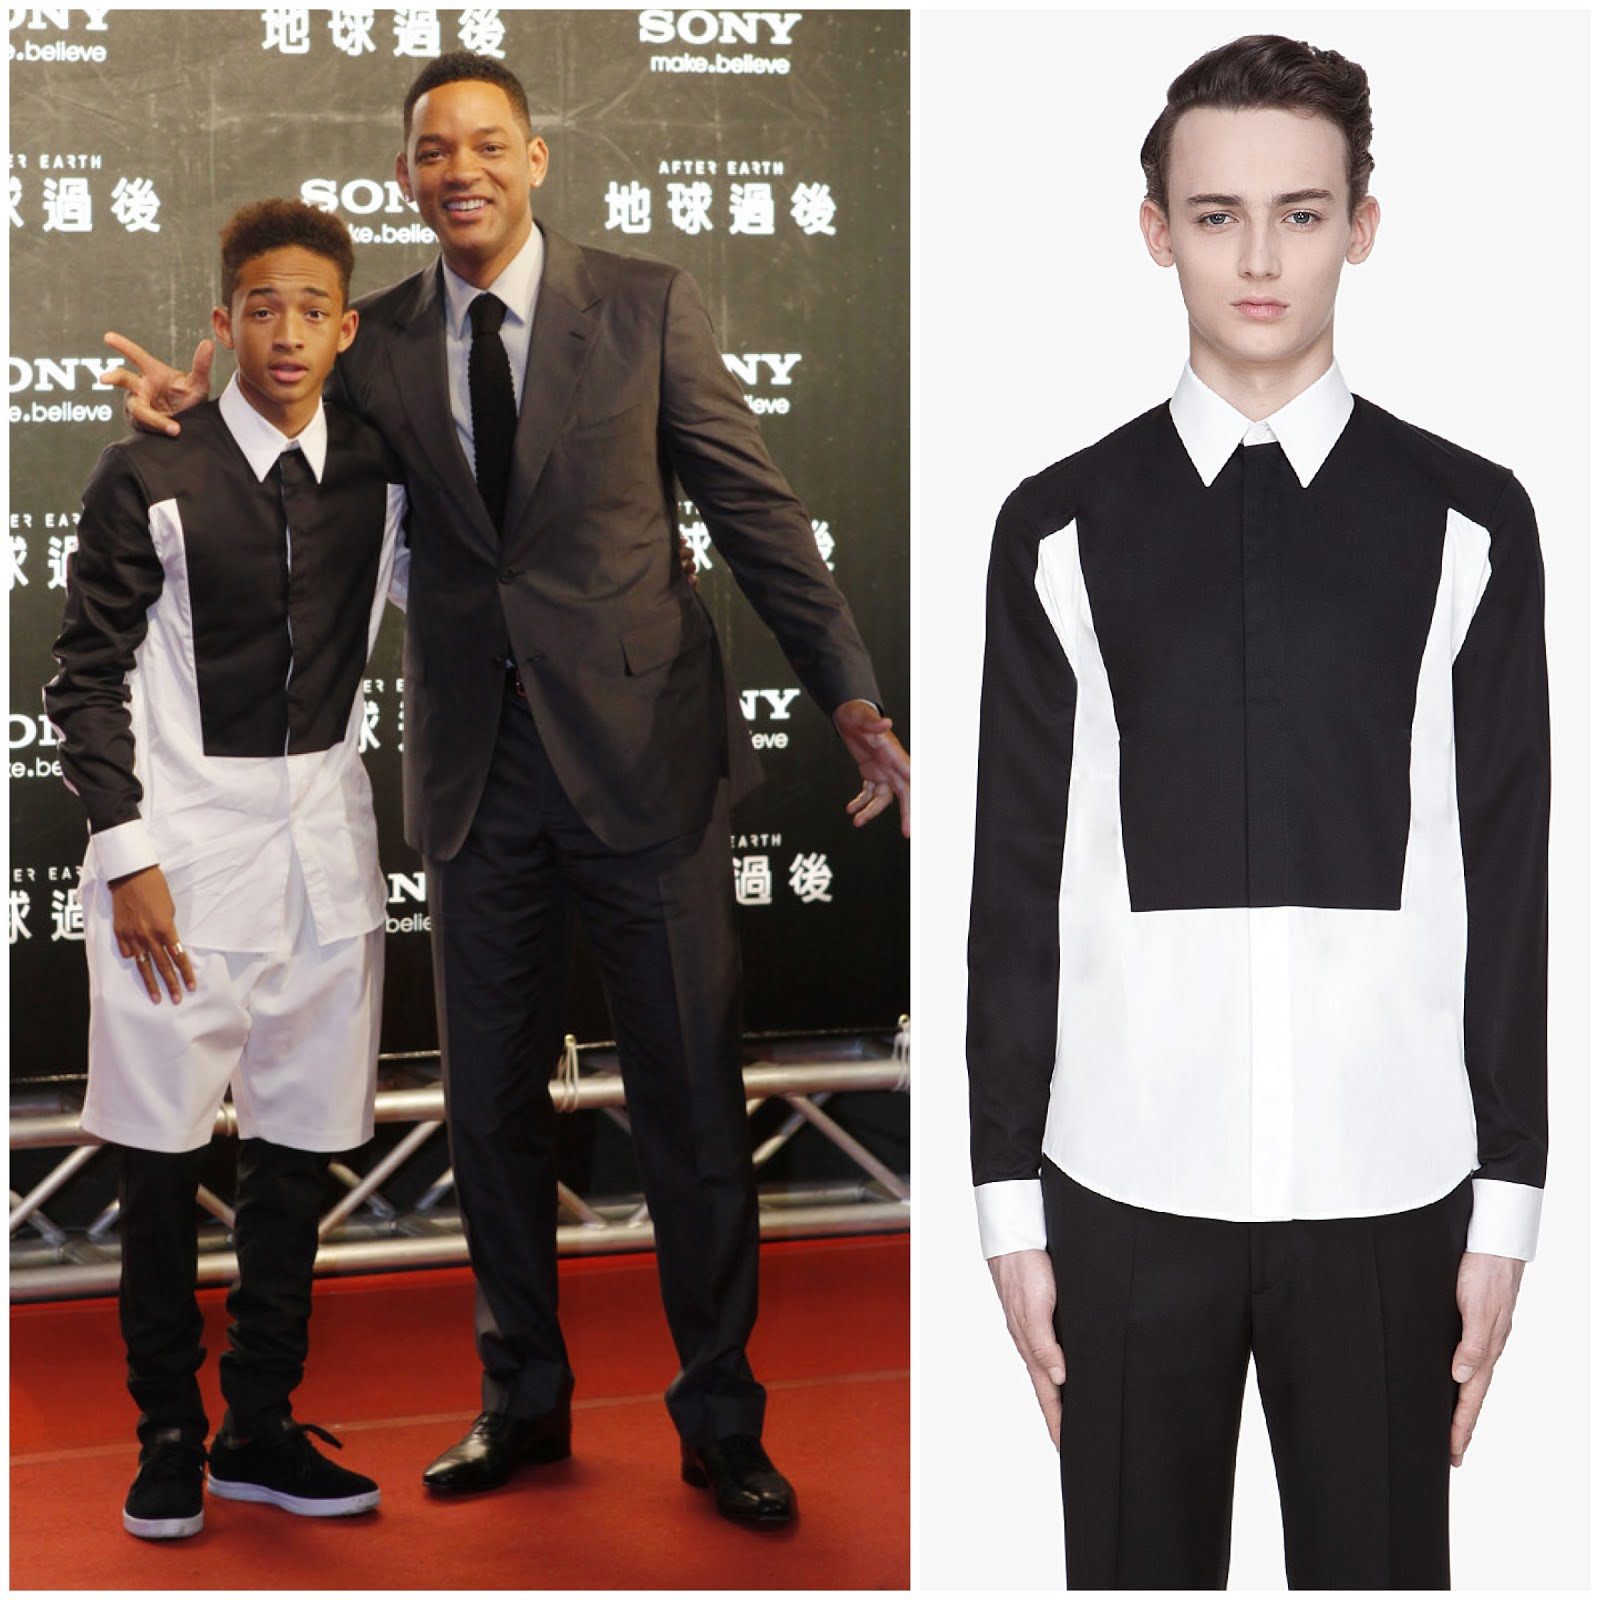 00O00 Menswear Blog: Will Smith and Jaden Smith in Givenchy white and black trompe l'oeil contrast shirt - 'After Earth' premiere in Taiwan